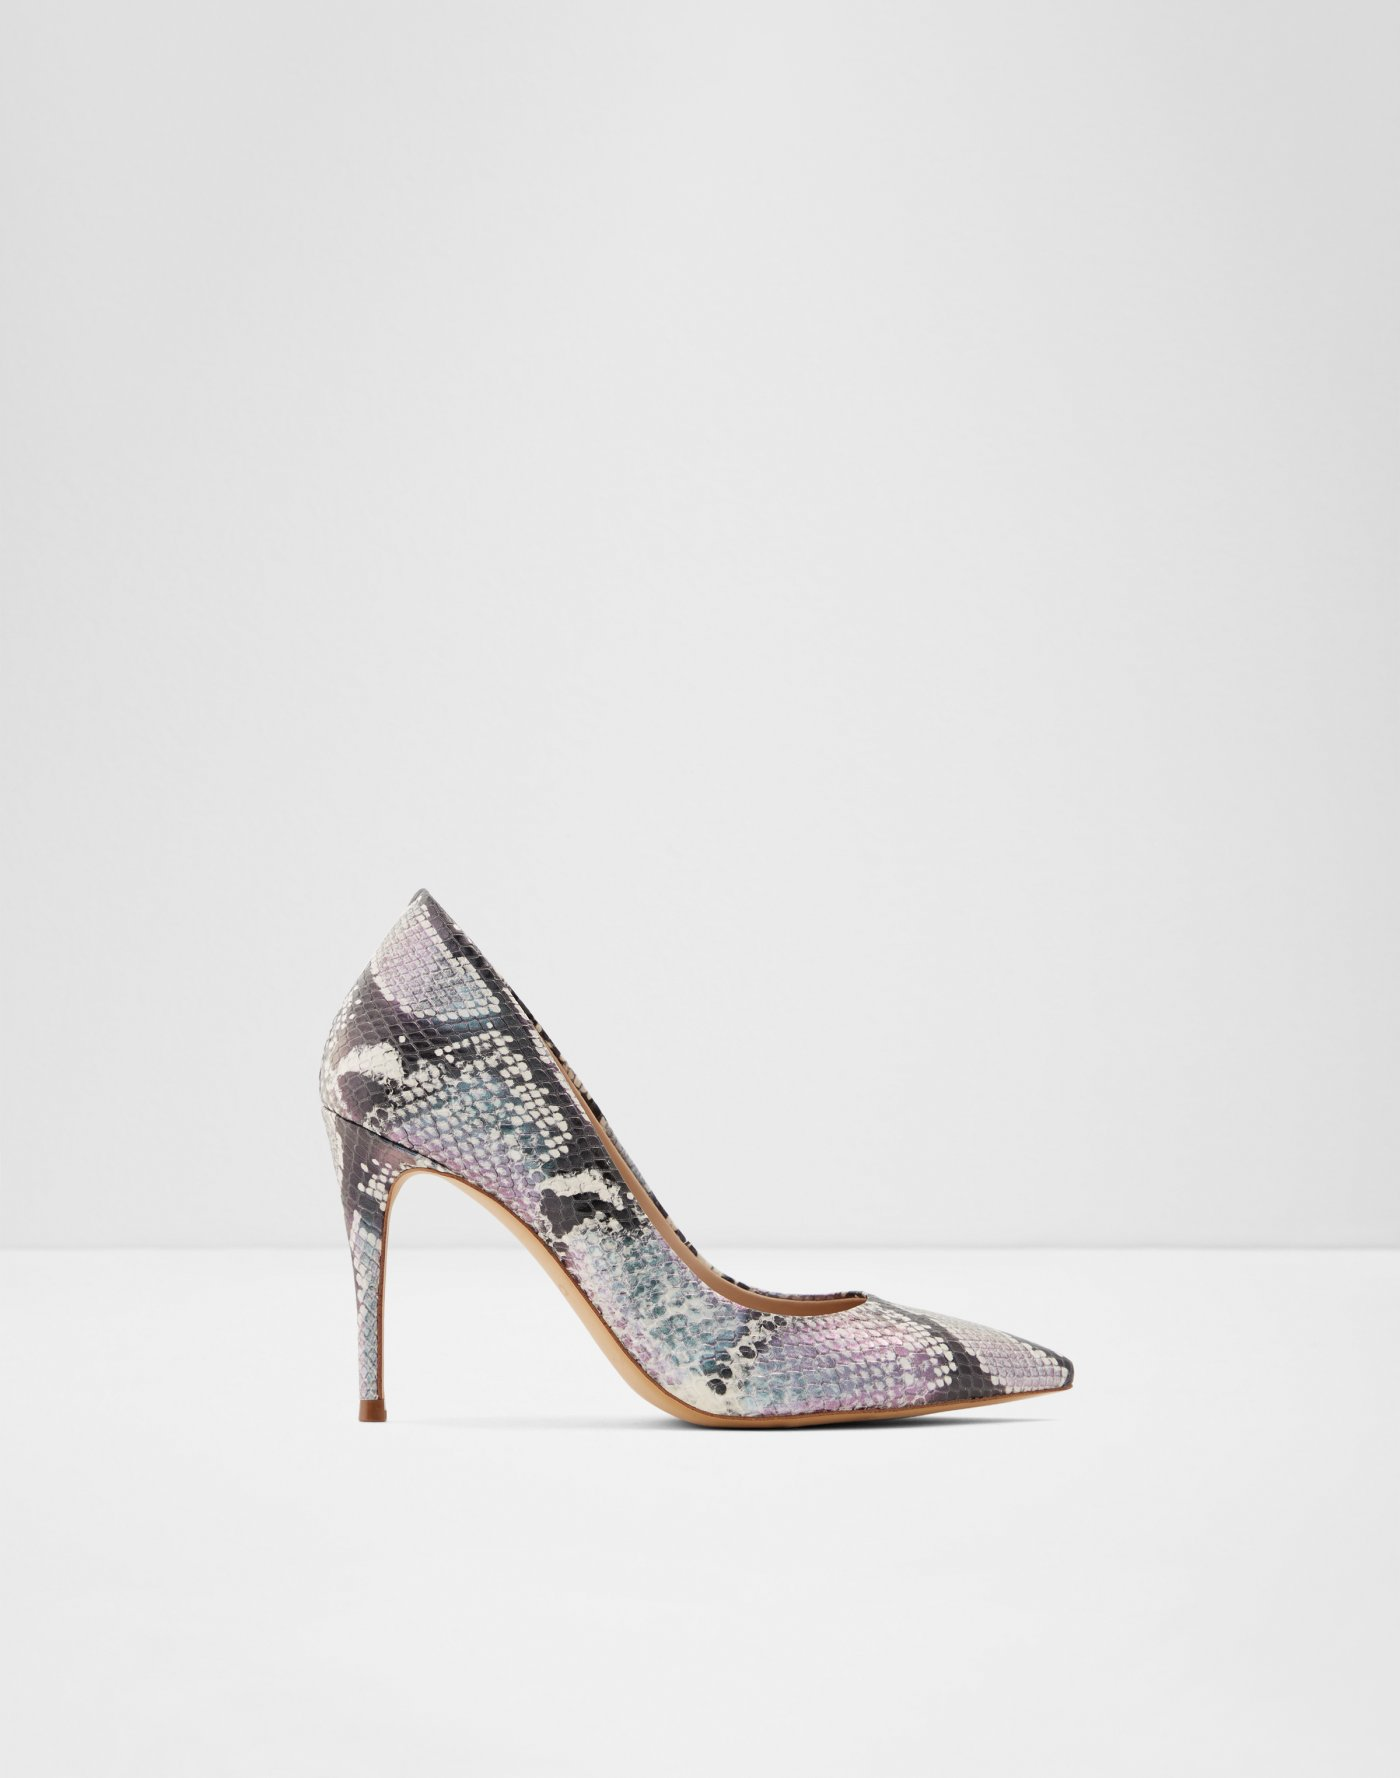 7791a814dc4 Heels For Women | Stilettos & High Heels | ALDO Canada | ALDO Canada